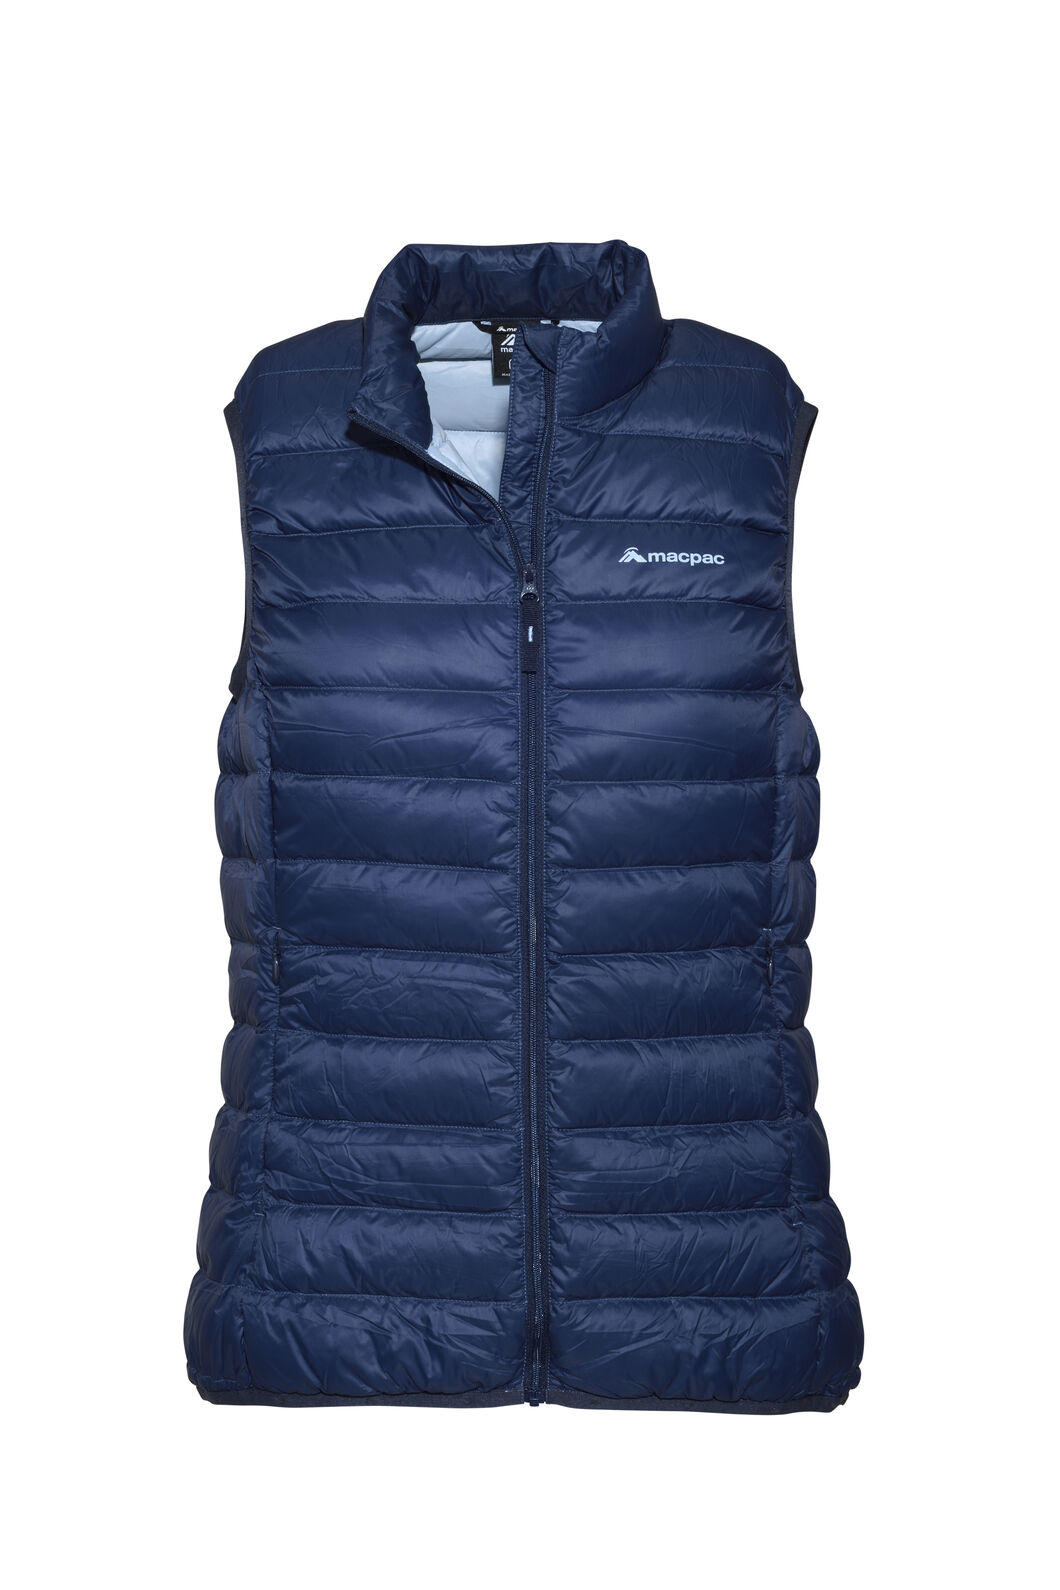 Macpac Uber Light Down Vest — Women's, Black Iris/Blue Fog, hi-res